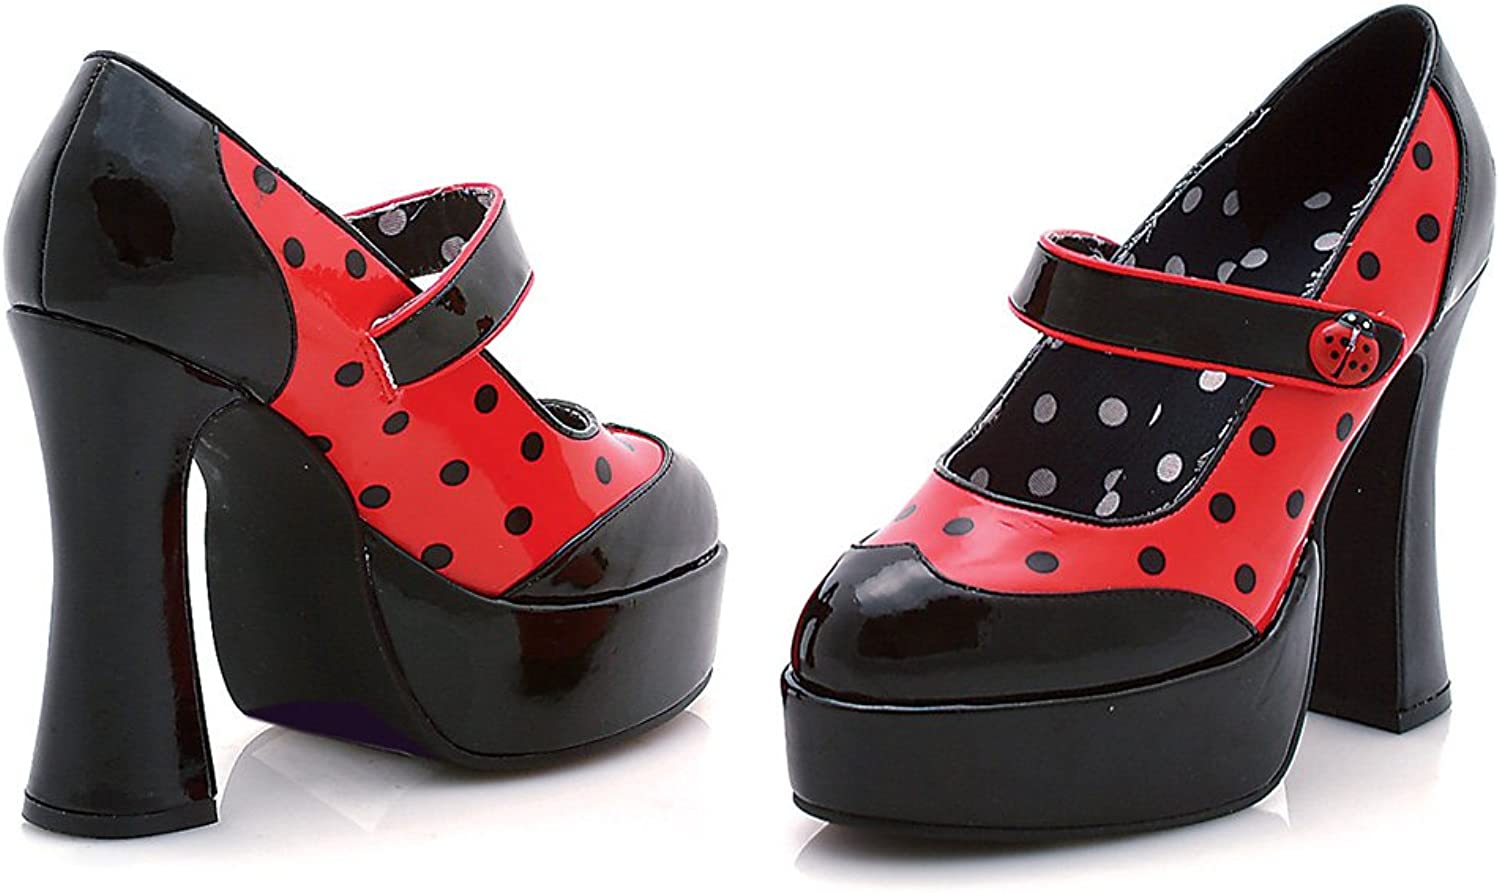 The Sexy Ladybug Platform shoes by Ellie